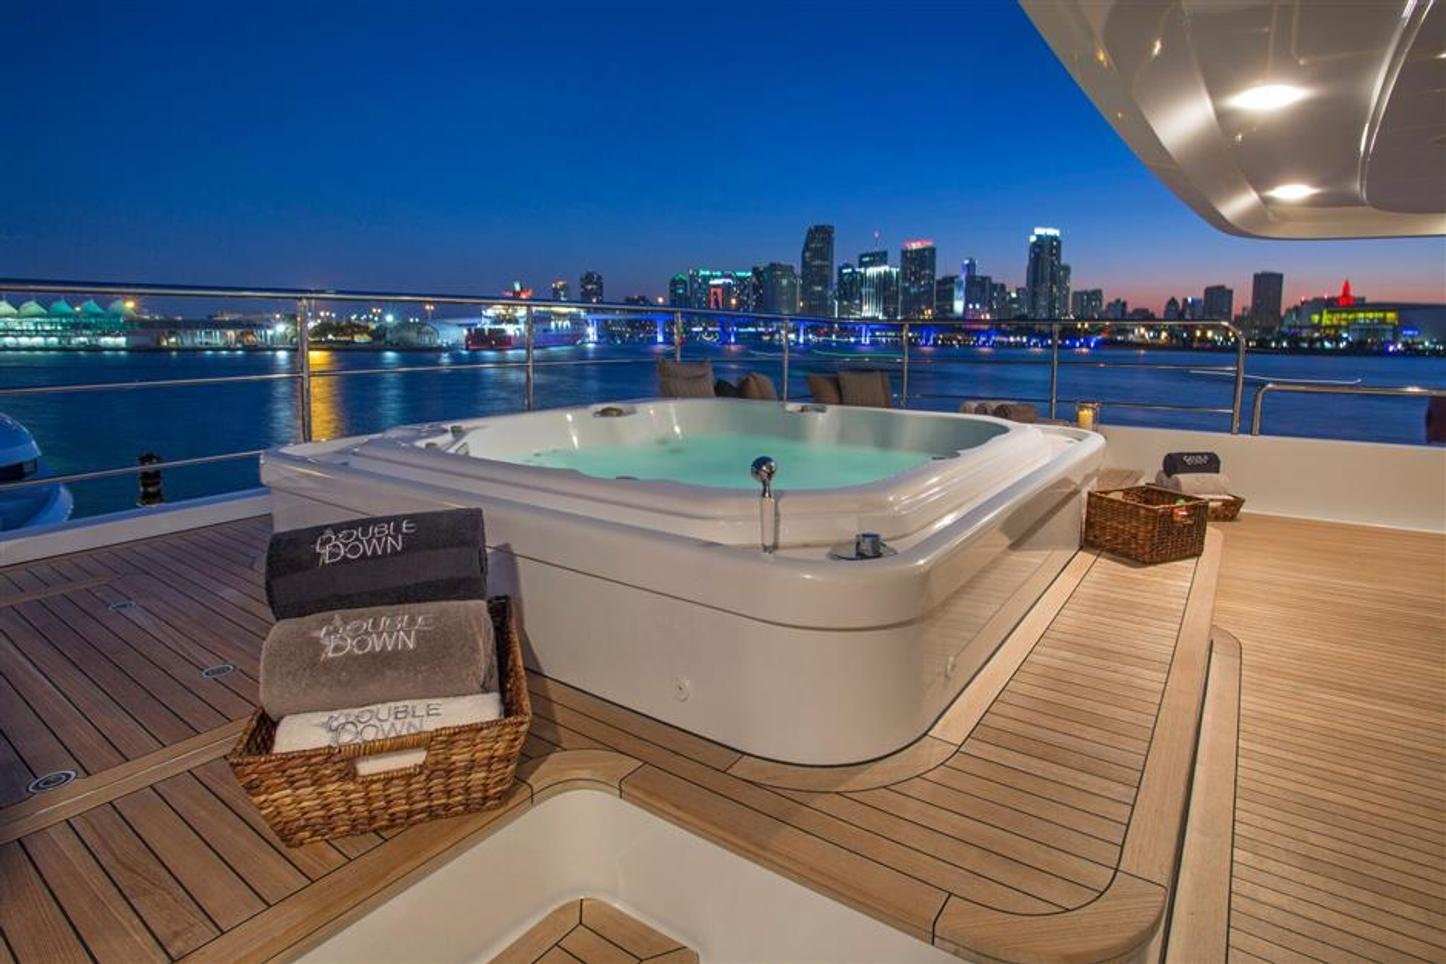 The Jacuzzi lit up on board superyacht Double Down at night